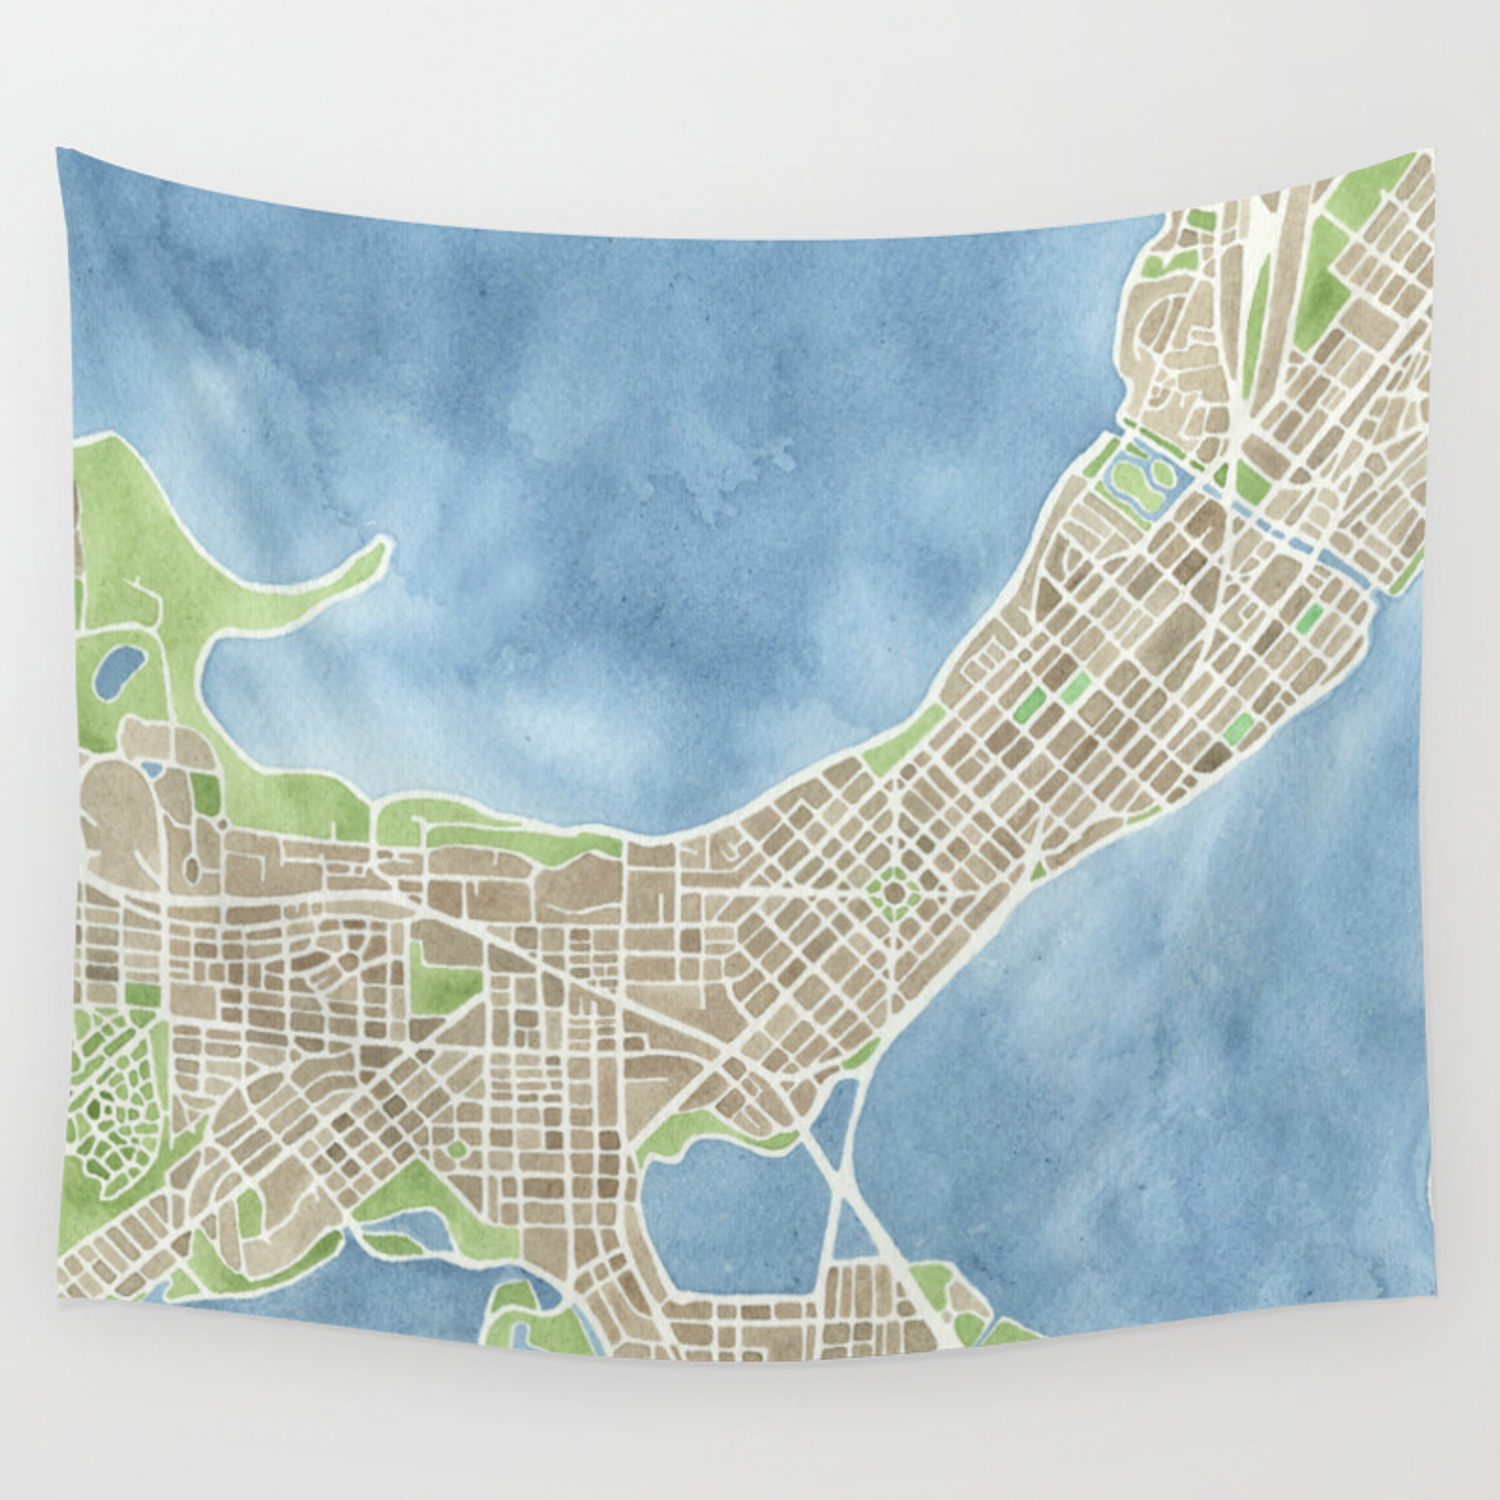 City Map Madison Wisconsin watercolor Wall Tapestry City Map Of Wisconsin on satellite maps of wisconsin, sports of wisconsin, frogs of wisconsin, the state of wisconsin, people of wisconsin, geography of wisconsin, menominee indian tribe of wisconsin, art of wisconsin, government of wisconsin, lakes of wisconsin, state flower of wisconsin, culture of wisconsin, blood center of wisconsin, google maps wisconsin, fish of wisconsin, economy of wisconsin, atlas of wisconsin, cities of wisconsin, demographics of wisconsin, all cities in wisconsin,